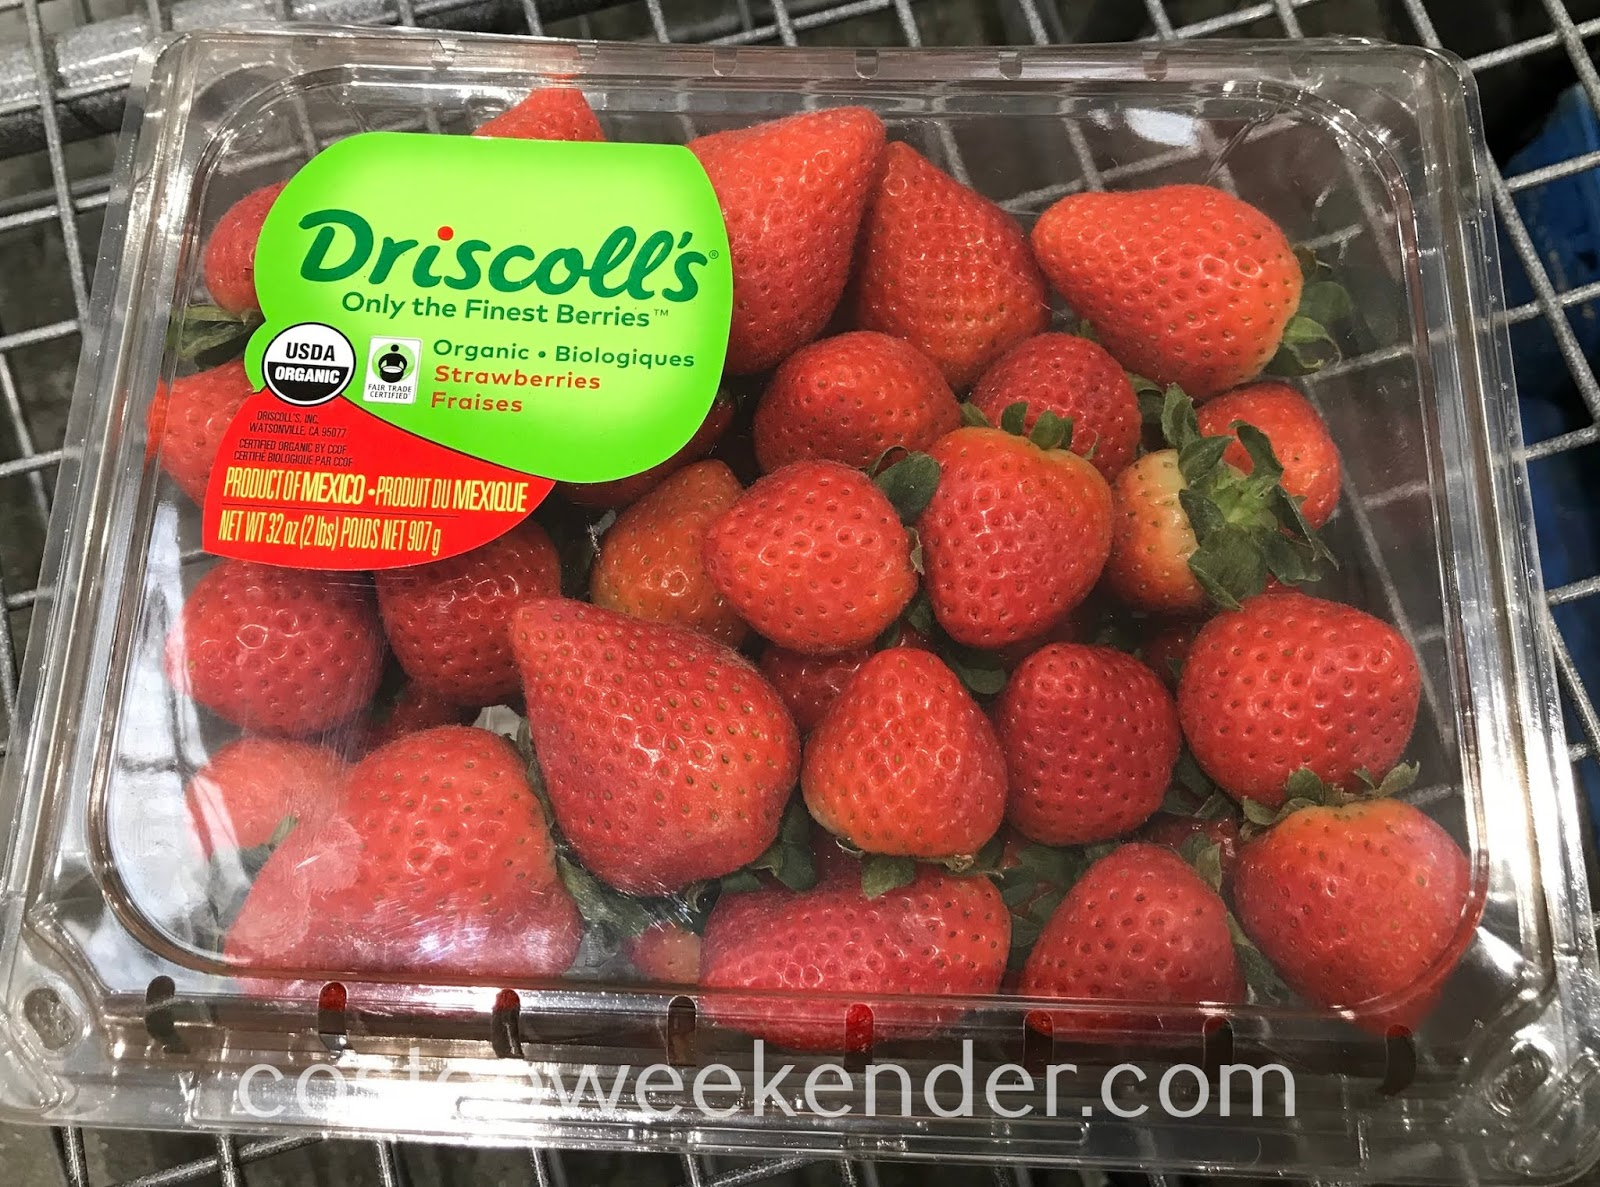 Eat a healthy snack with Driscoll's Organic Strawberries